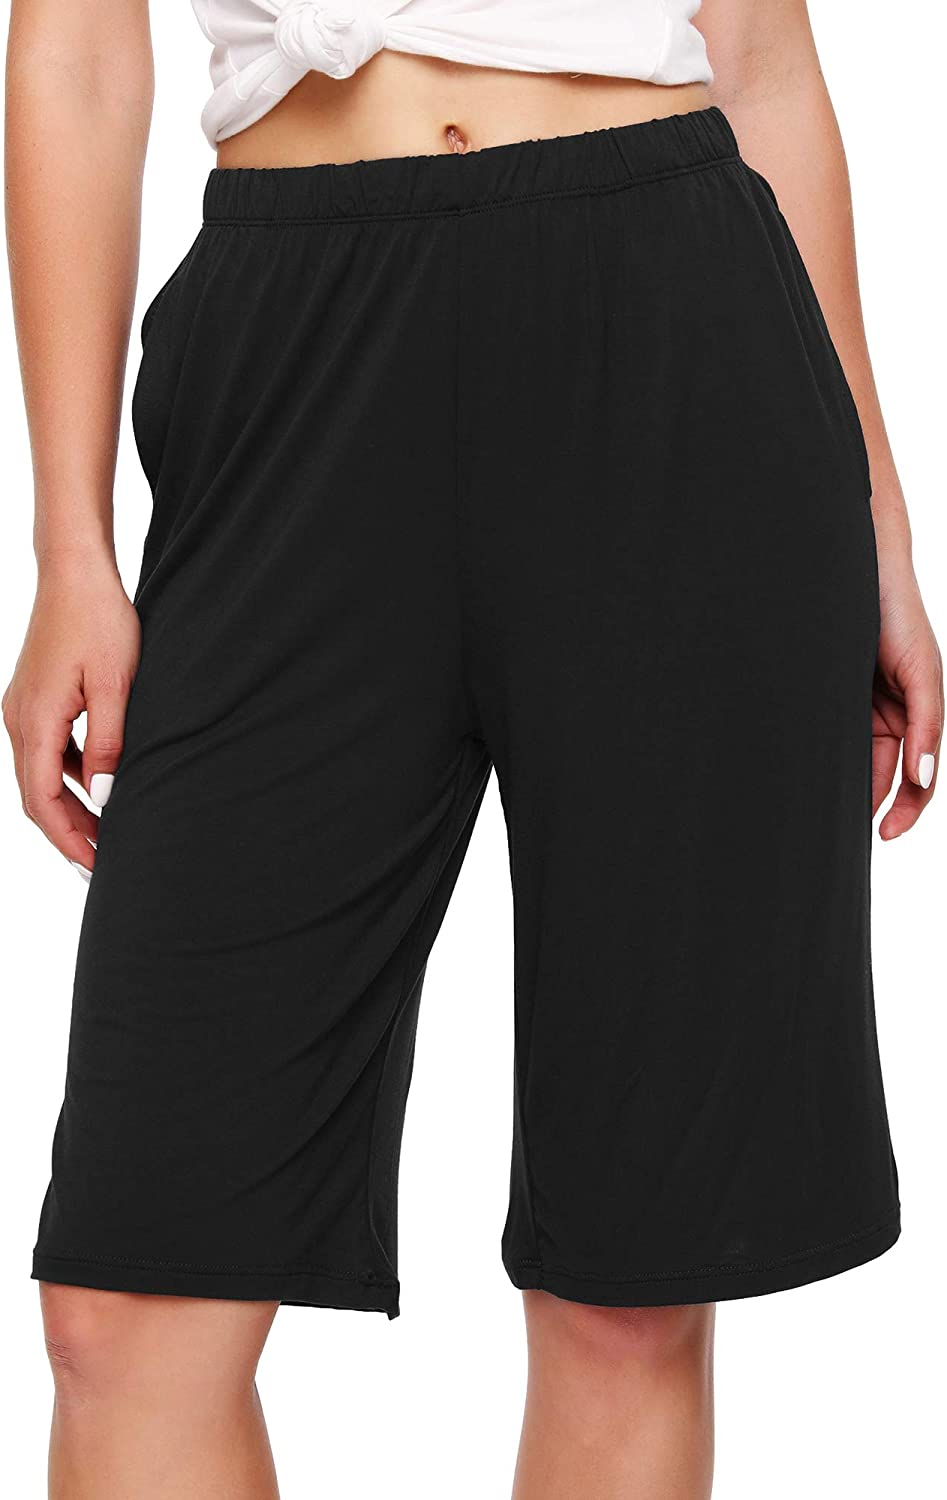 WiWi Bamboo Sleep Shorts for Women Soft Lounge Bottoms with Pockets Plus Size Lightweight Pajama Short Pants S-3X